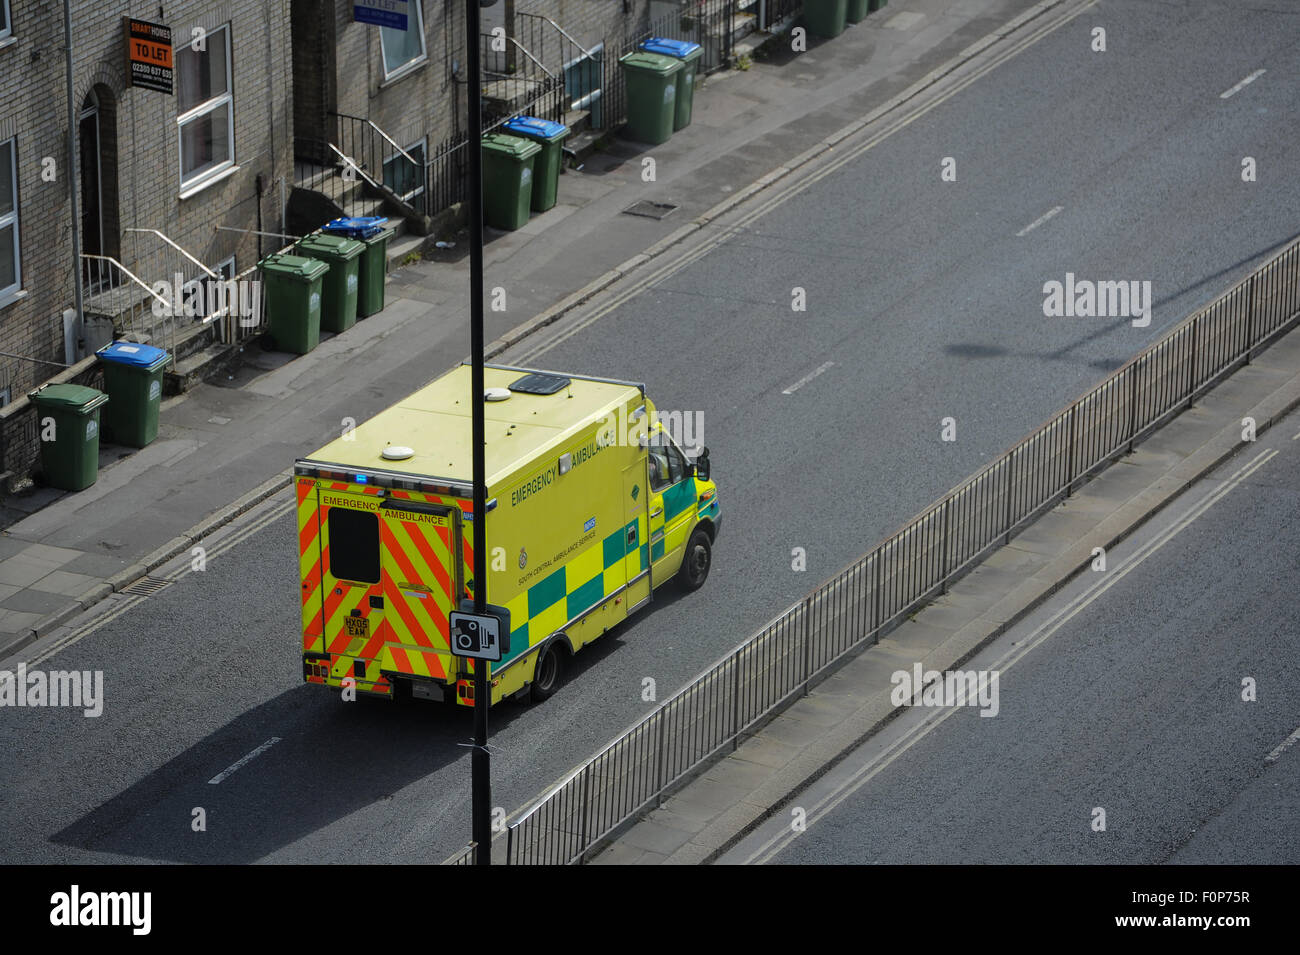 South central Ambulance on way to an emergency call in Southampton - Stock Image